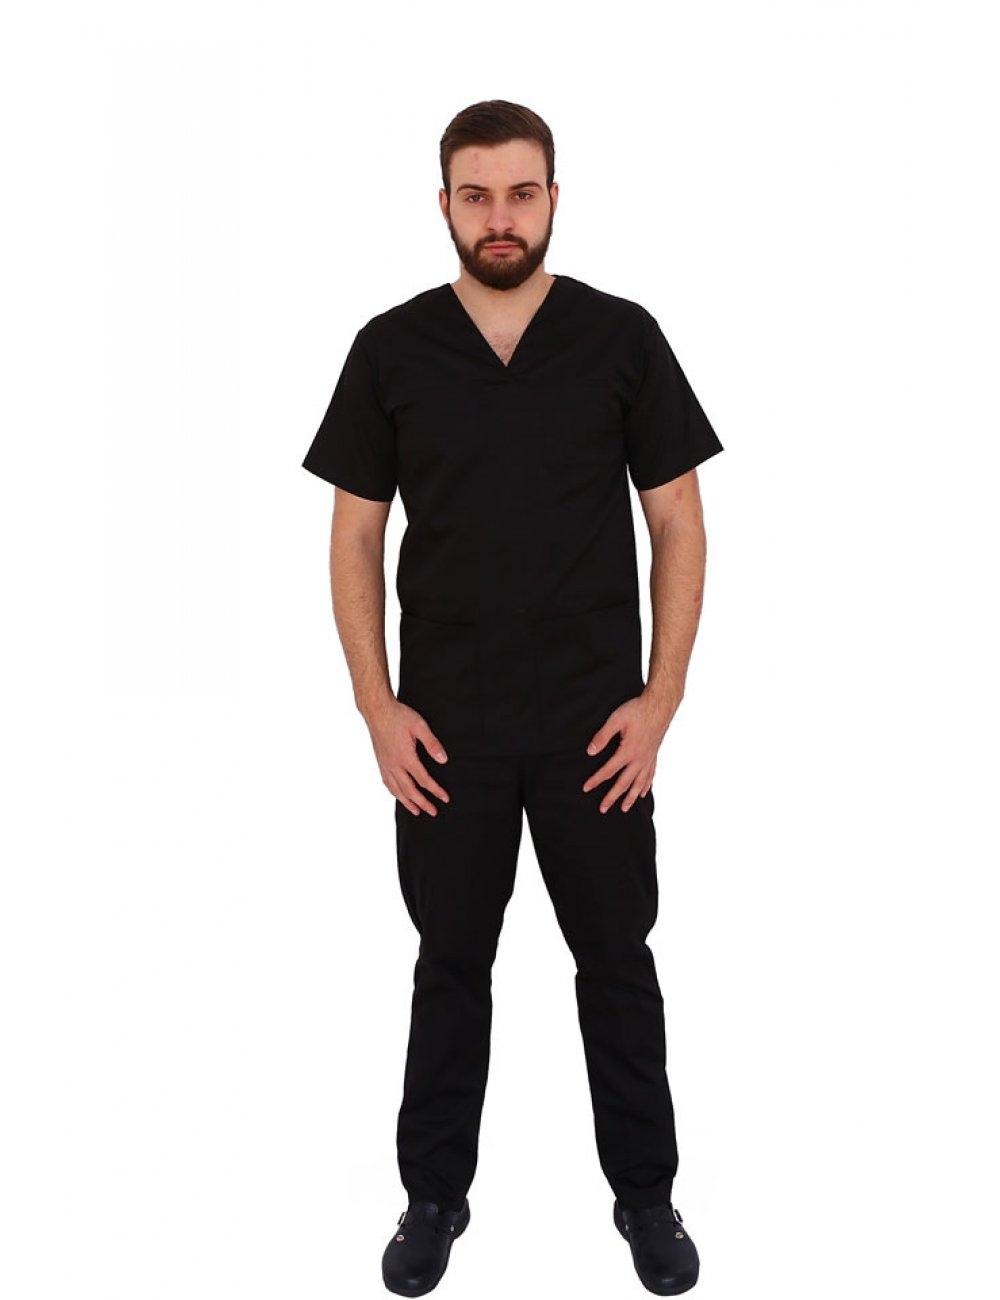 Costum medical negru unisex